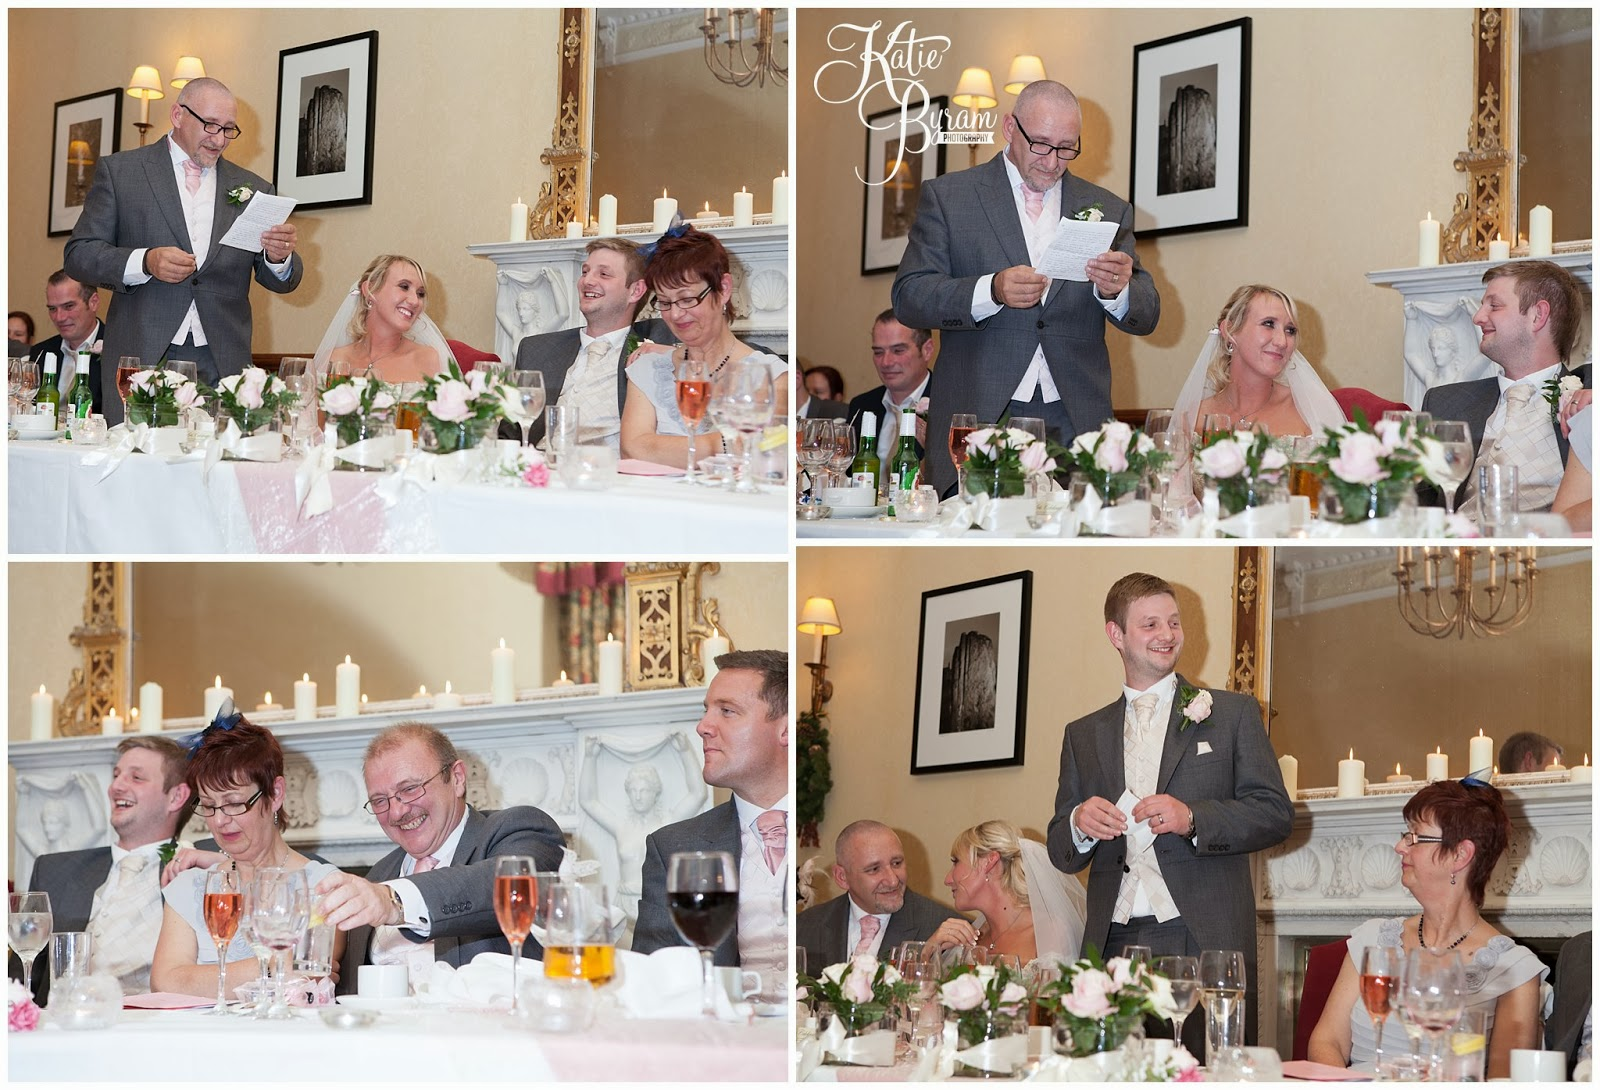 wedding speeches, matfen hall wedding, matfen wedding, northumberland wedding, katie byram photography, vintage wedding, quirky wedding photography, north east wedding, north east wedding venue, great hall matfen, event diva, by wendy, just perfect,